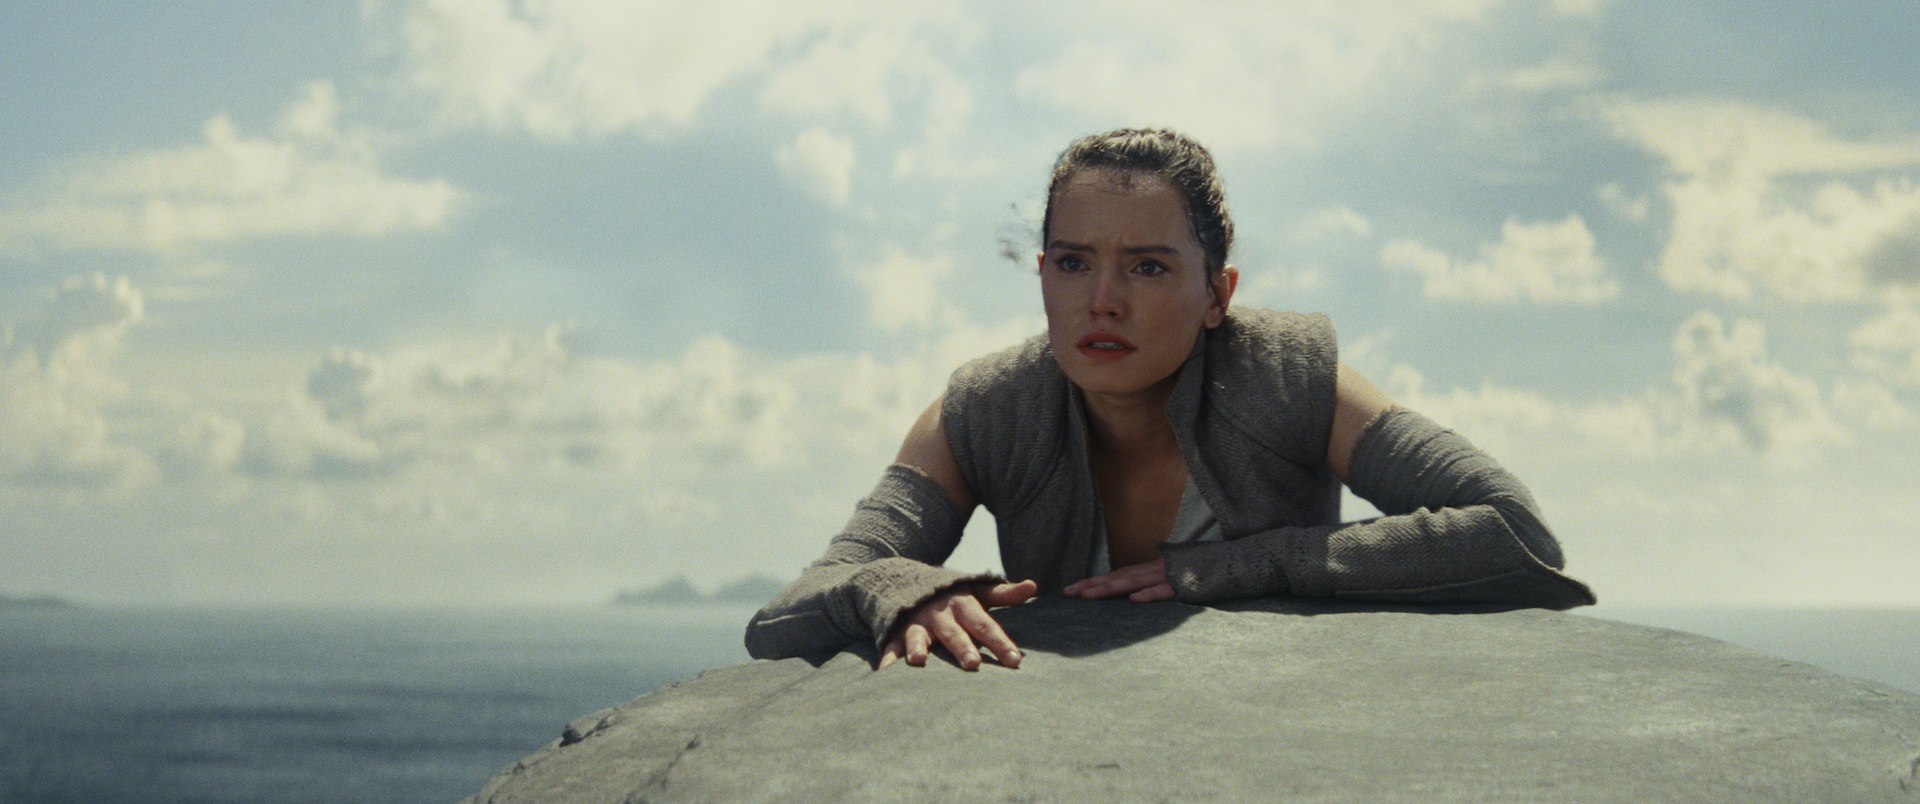 Rey (Daisy Ridley) struggles to understand her powers.